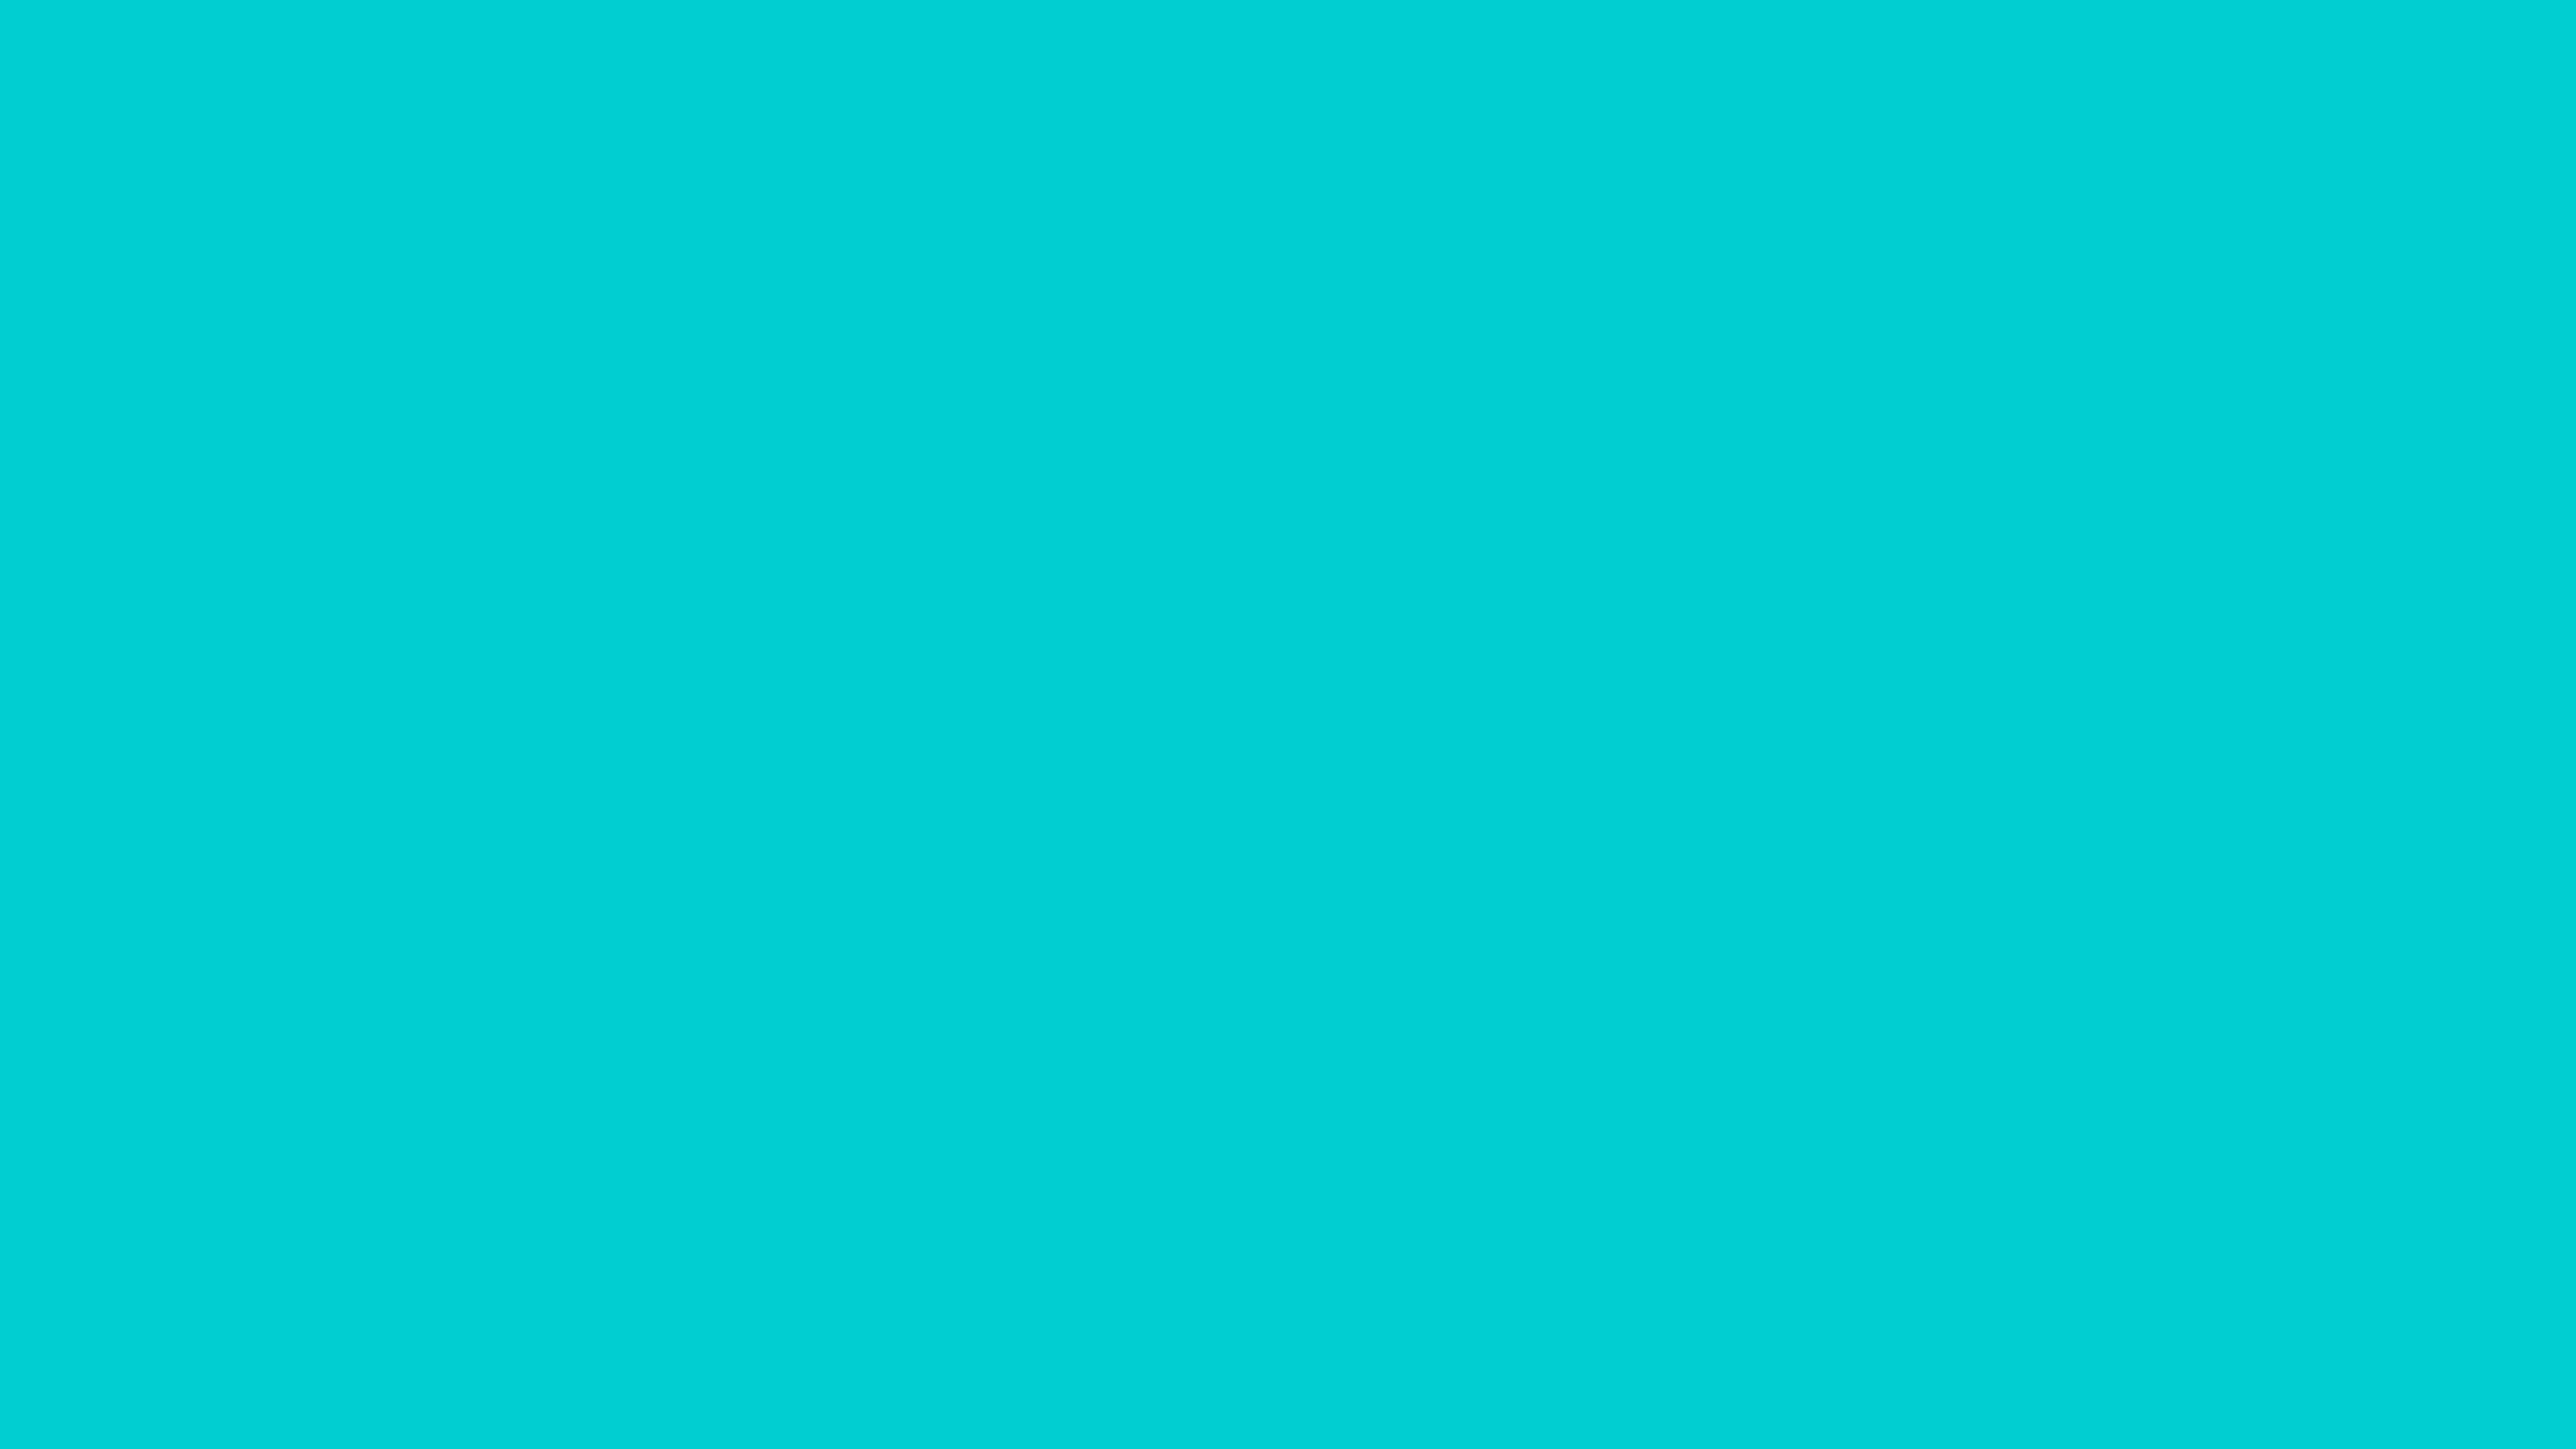 5120x2880 Dark Turquoise Solid Color Background